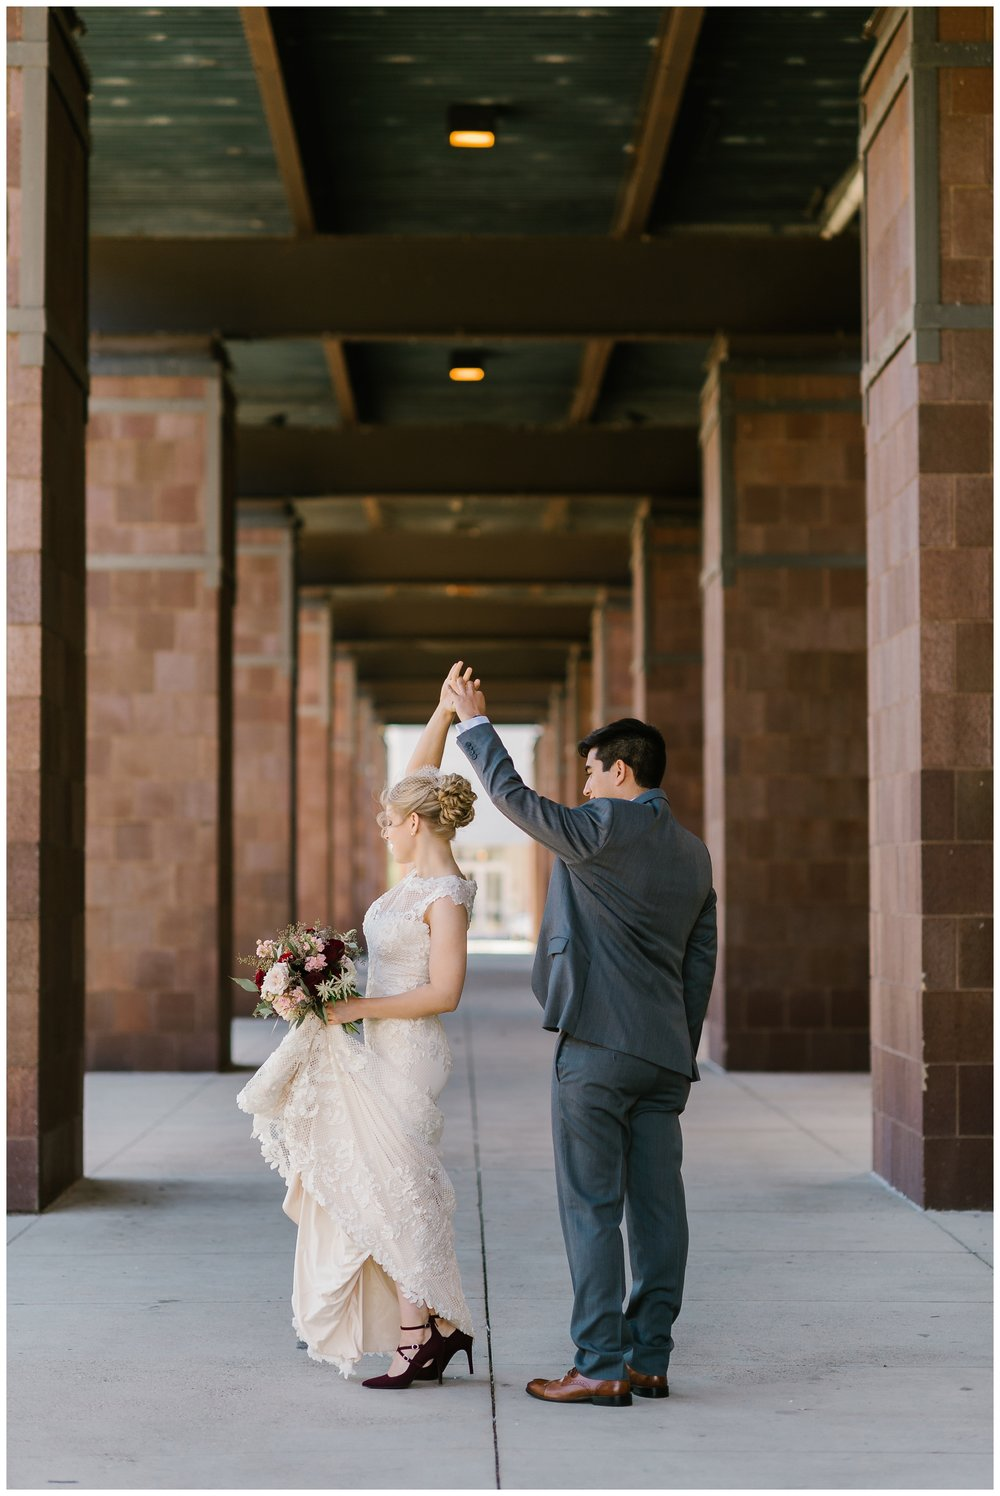 Rebecca_Shehorn_Photography_Indianapolis_Wedding_Photographer_7338.jpg